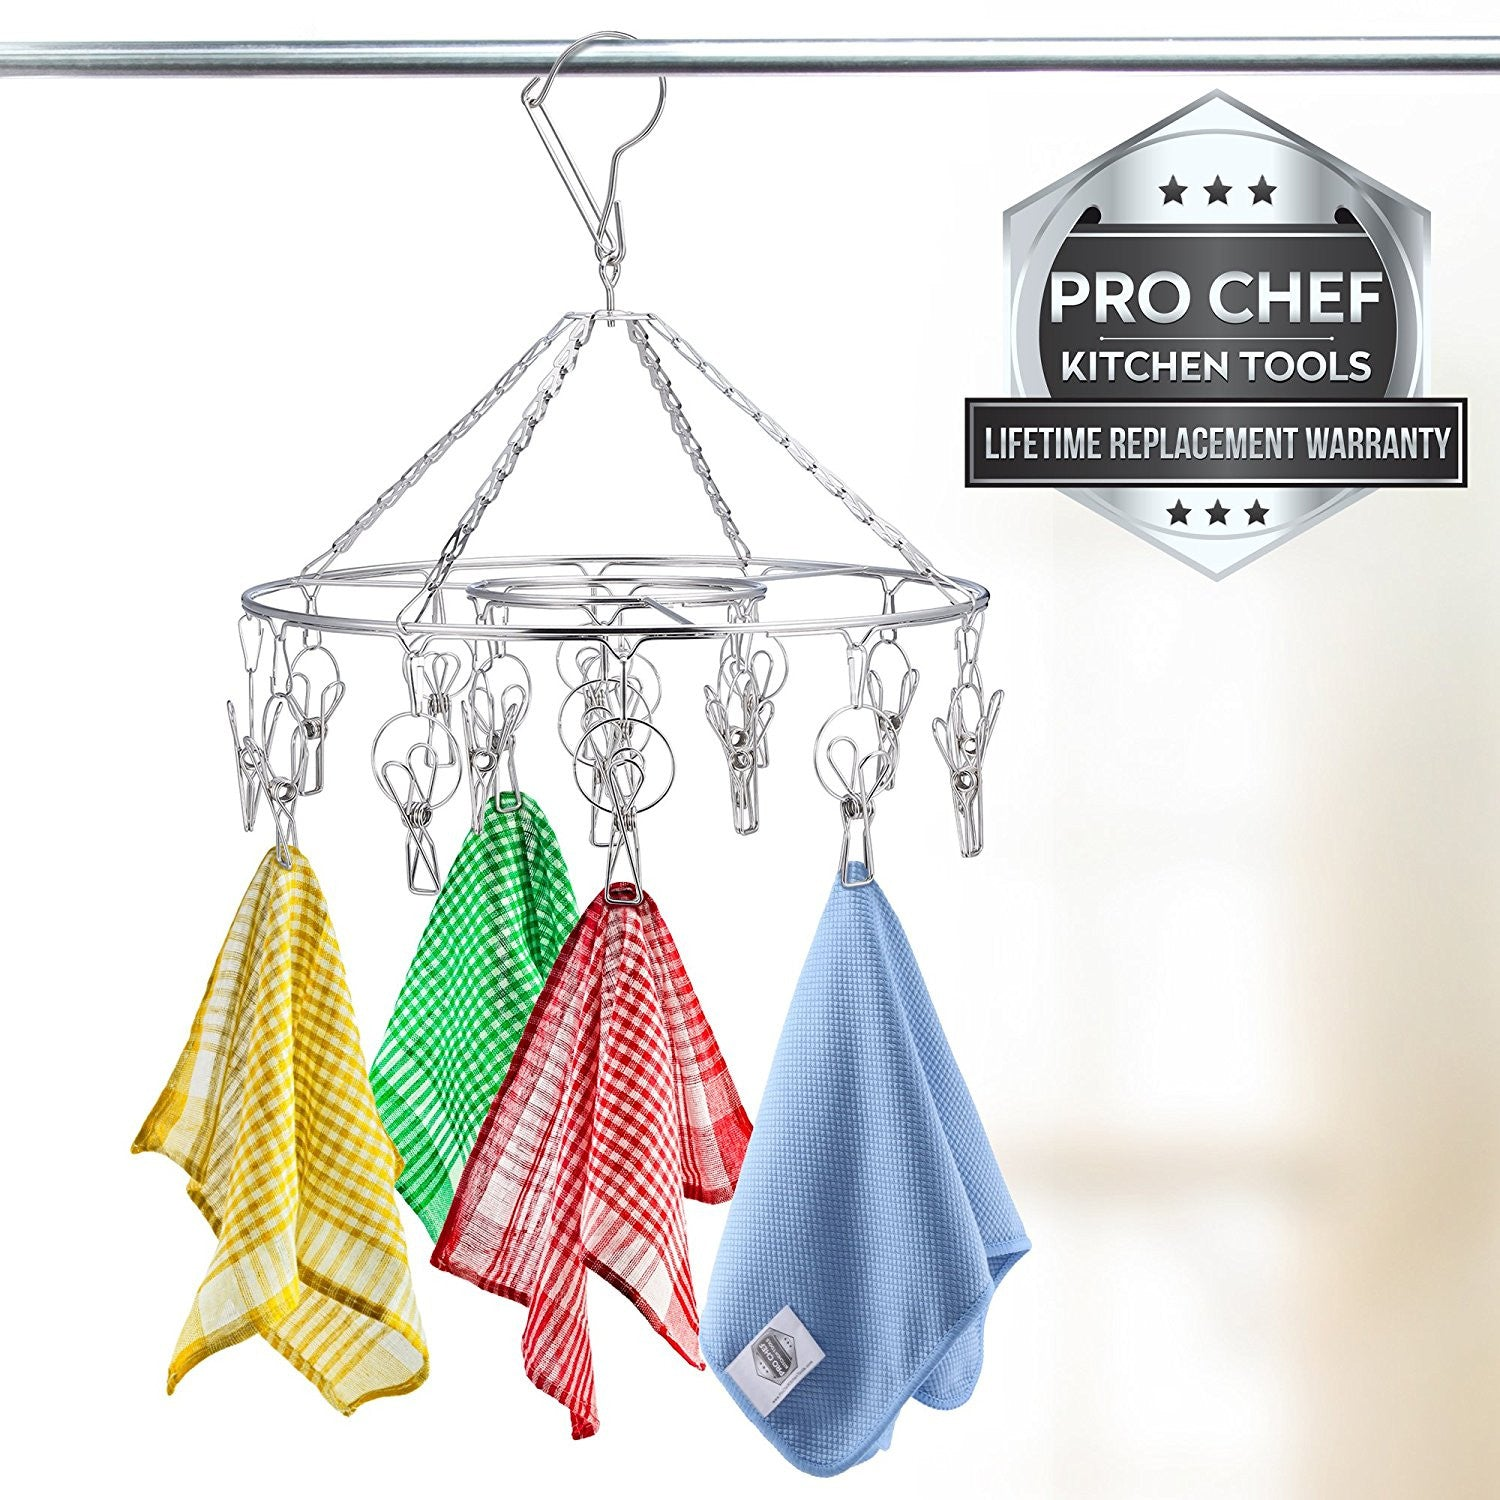 Pro Chef Kitchen Tools Stainless Steel Laundry Drying Rack   Round Compact Portable  Outdoor Or Indoor Clothesline Replacement Will Dry Clothing Anywhere And ...